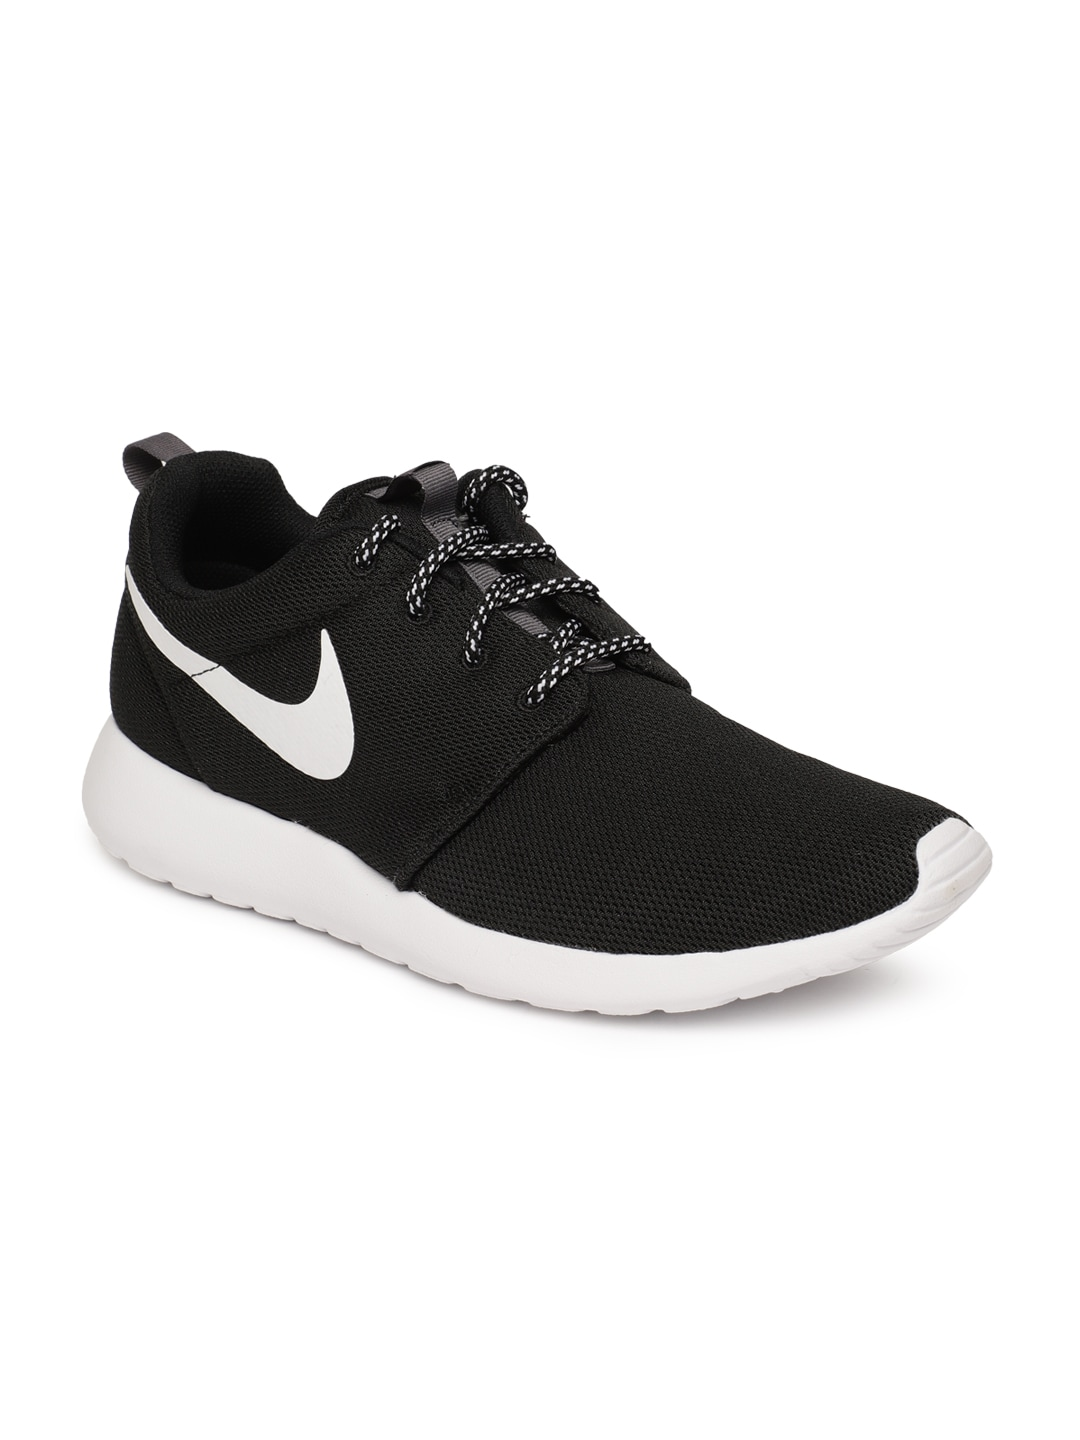 the best attitude a9b02 03c28 Nike White Shoes - Buy Nike White Shoes Online in India